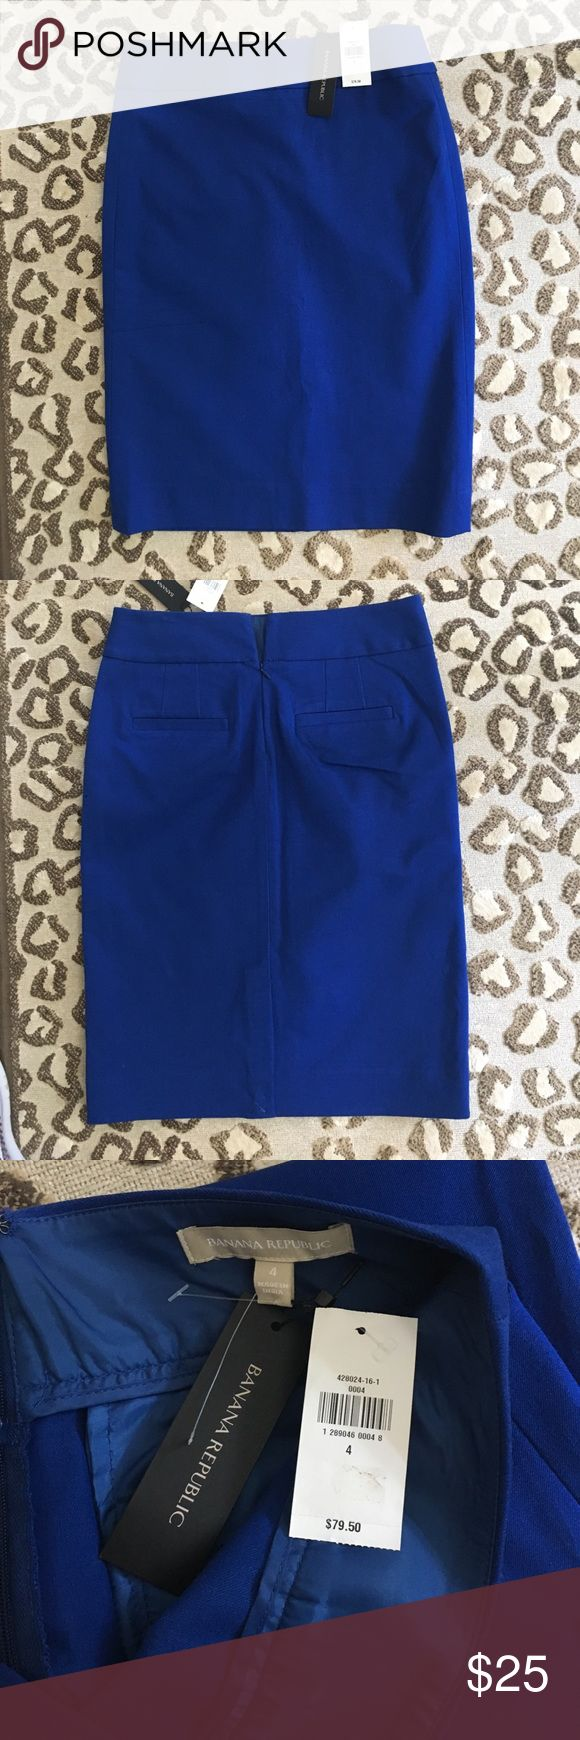 New with tags! Banana Republic Pencil Skirt New with Tags! Banana Republic royal blue pencil skirt. Thick cotton like material. Size 4 Banana Republic Skirts Pencil